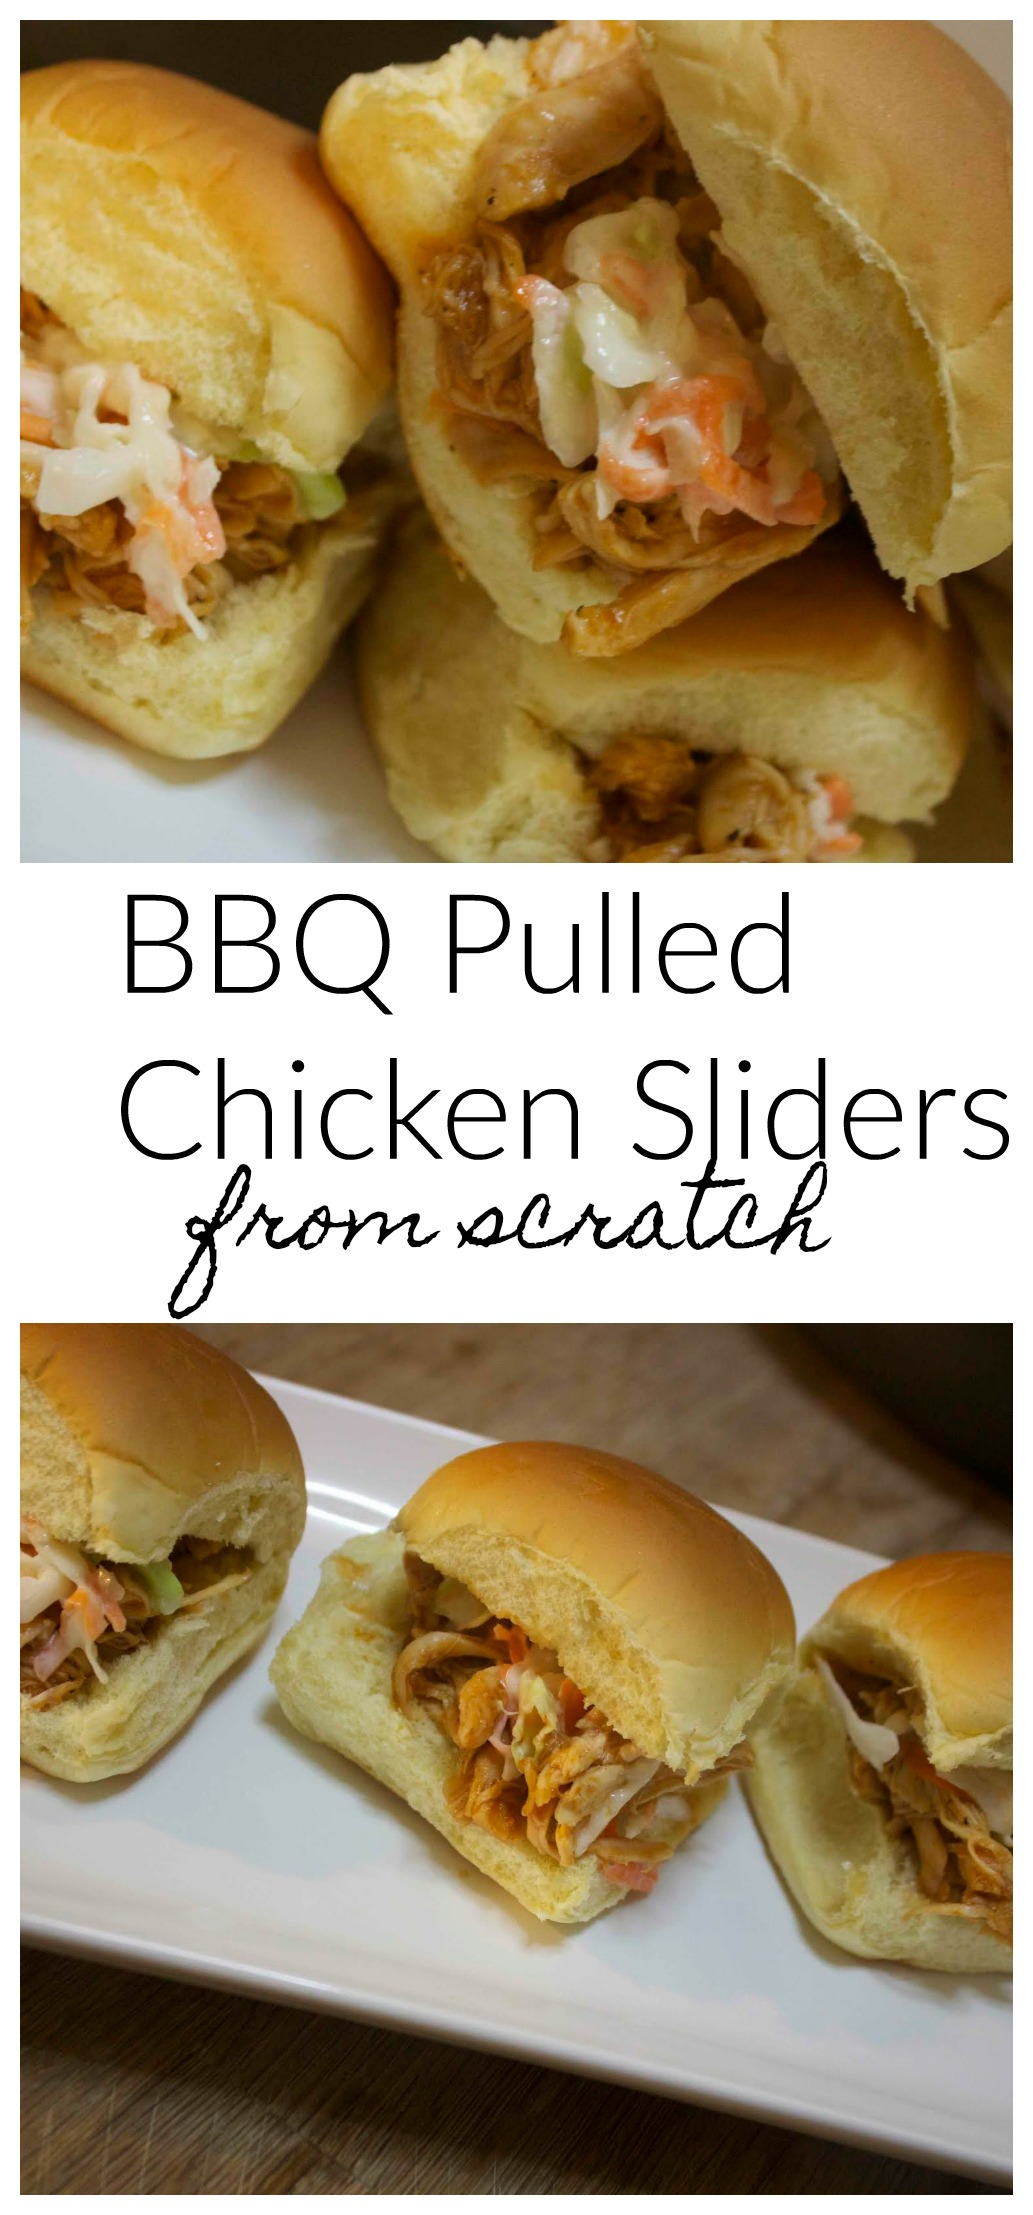 Homemade BBQ Pulled Chicken Sliders | Video & Recipe from Cooked By Julie